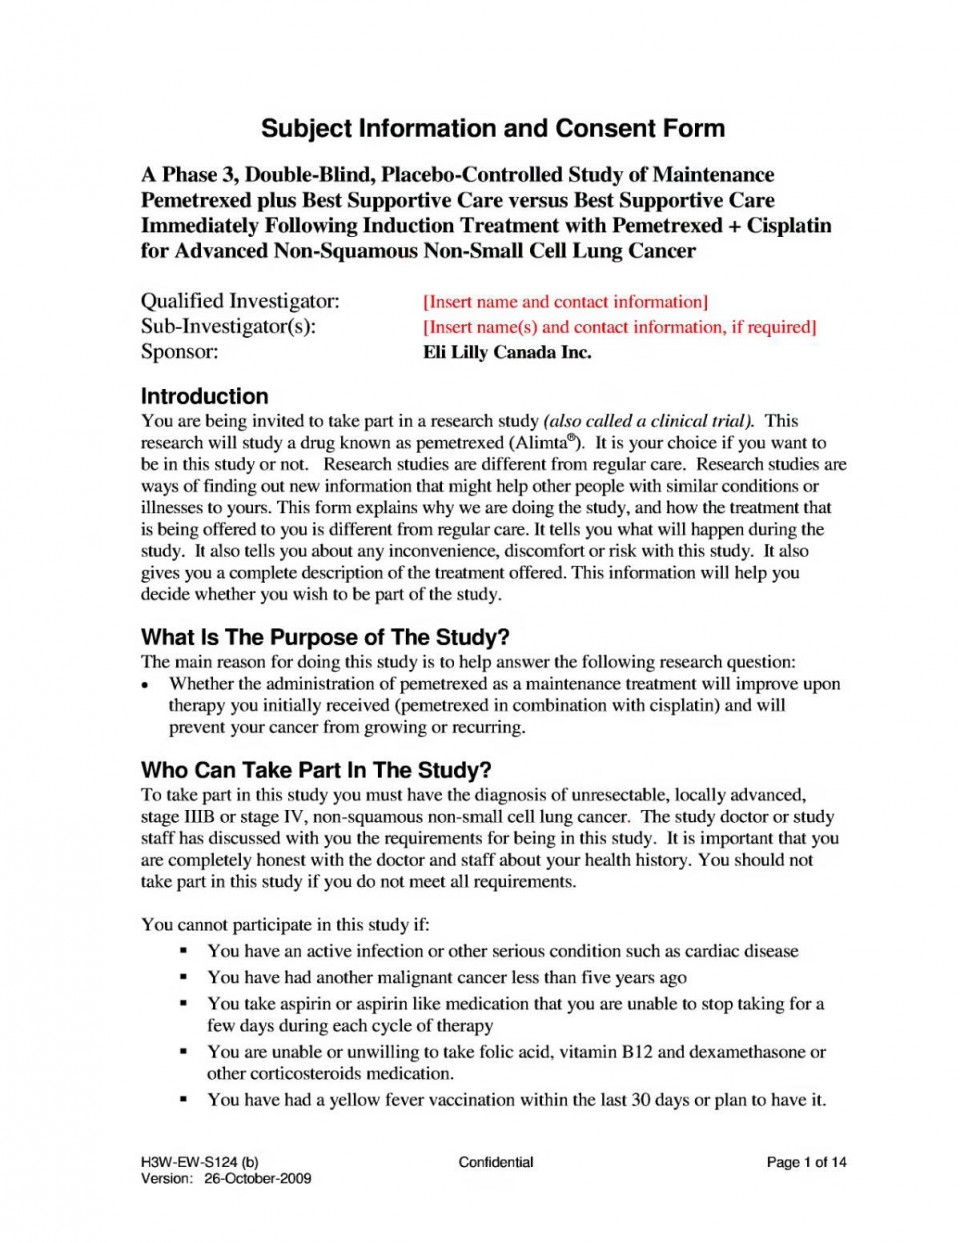 007 Awful Medical Treatment Authorization And Consent Form Template Idea 960